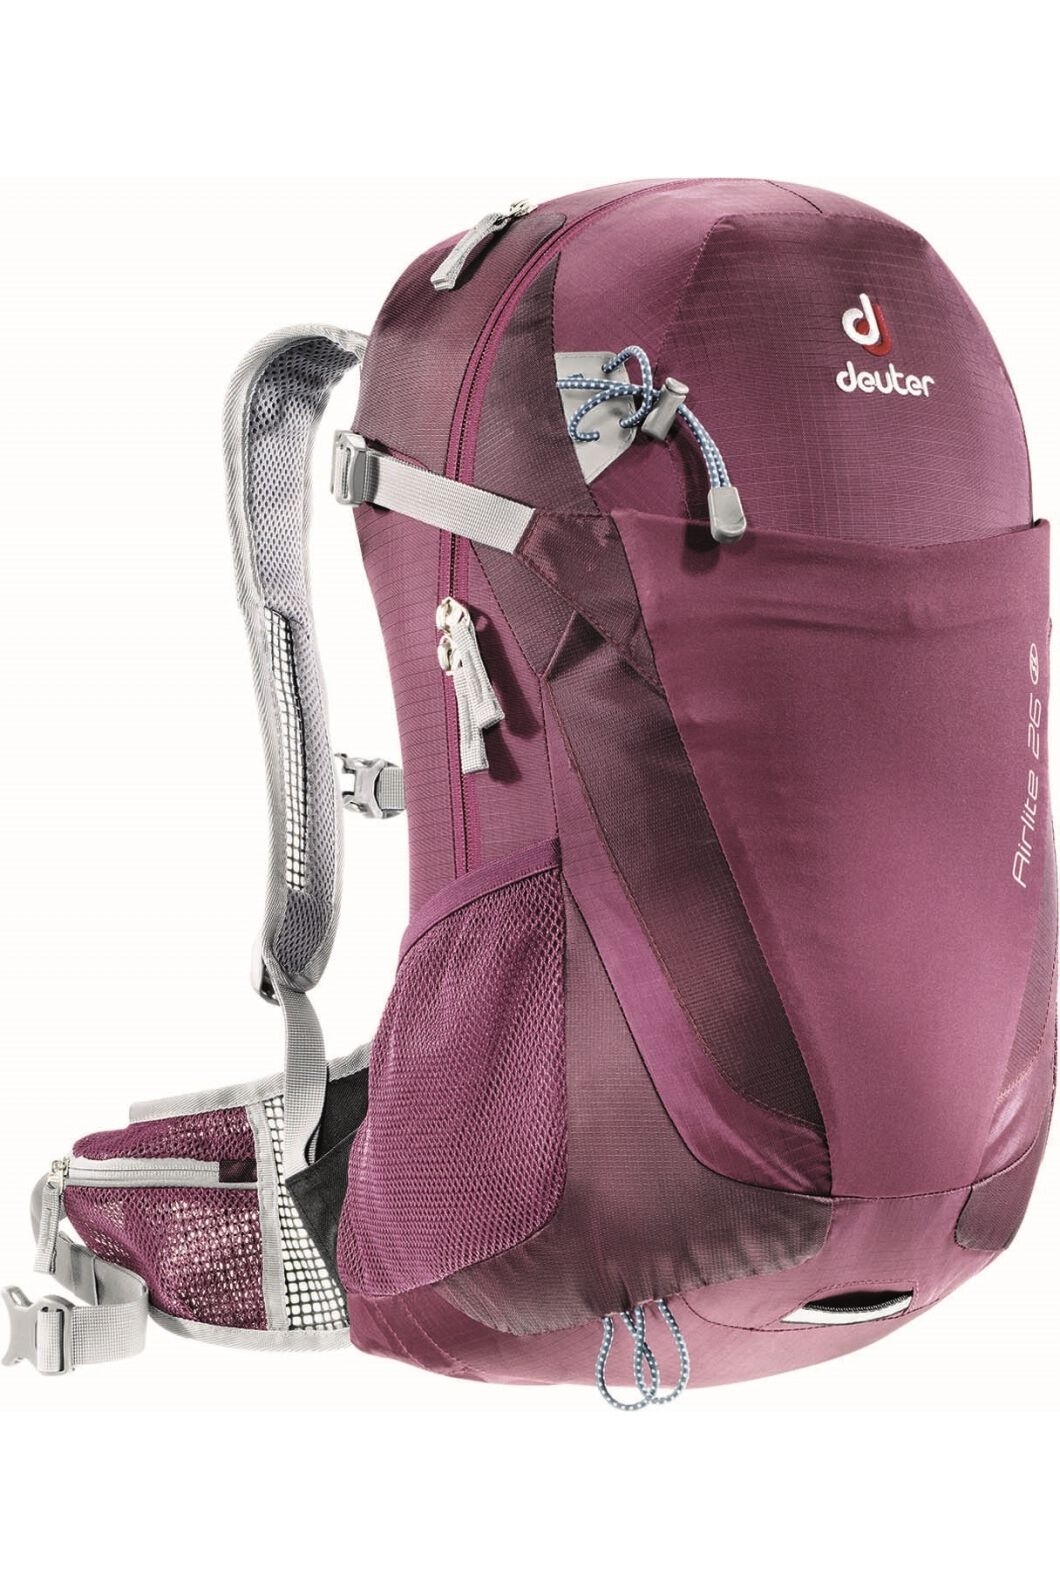 Deuter Airlite 26 Daypack, None, hi-res